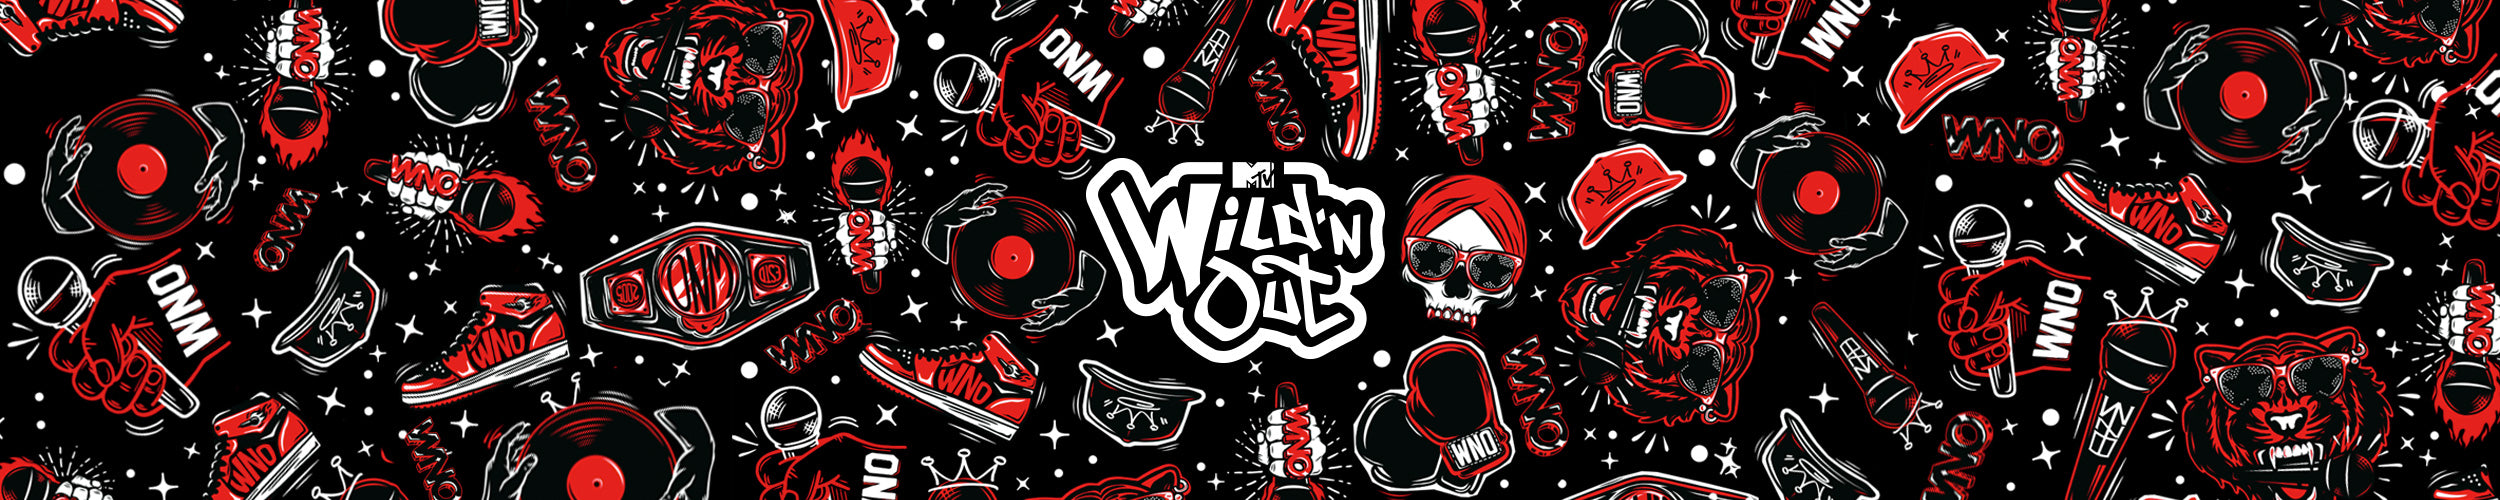 Wild 'N Out - Nick Cannon